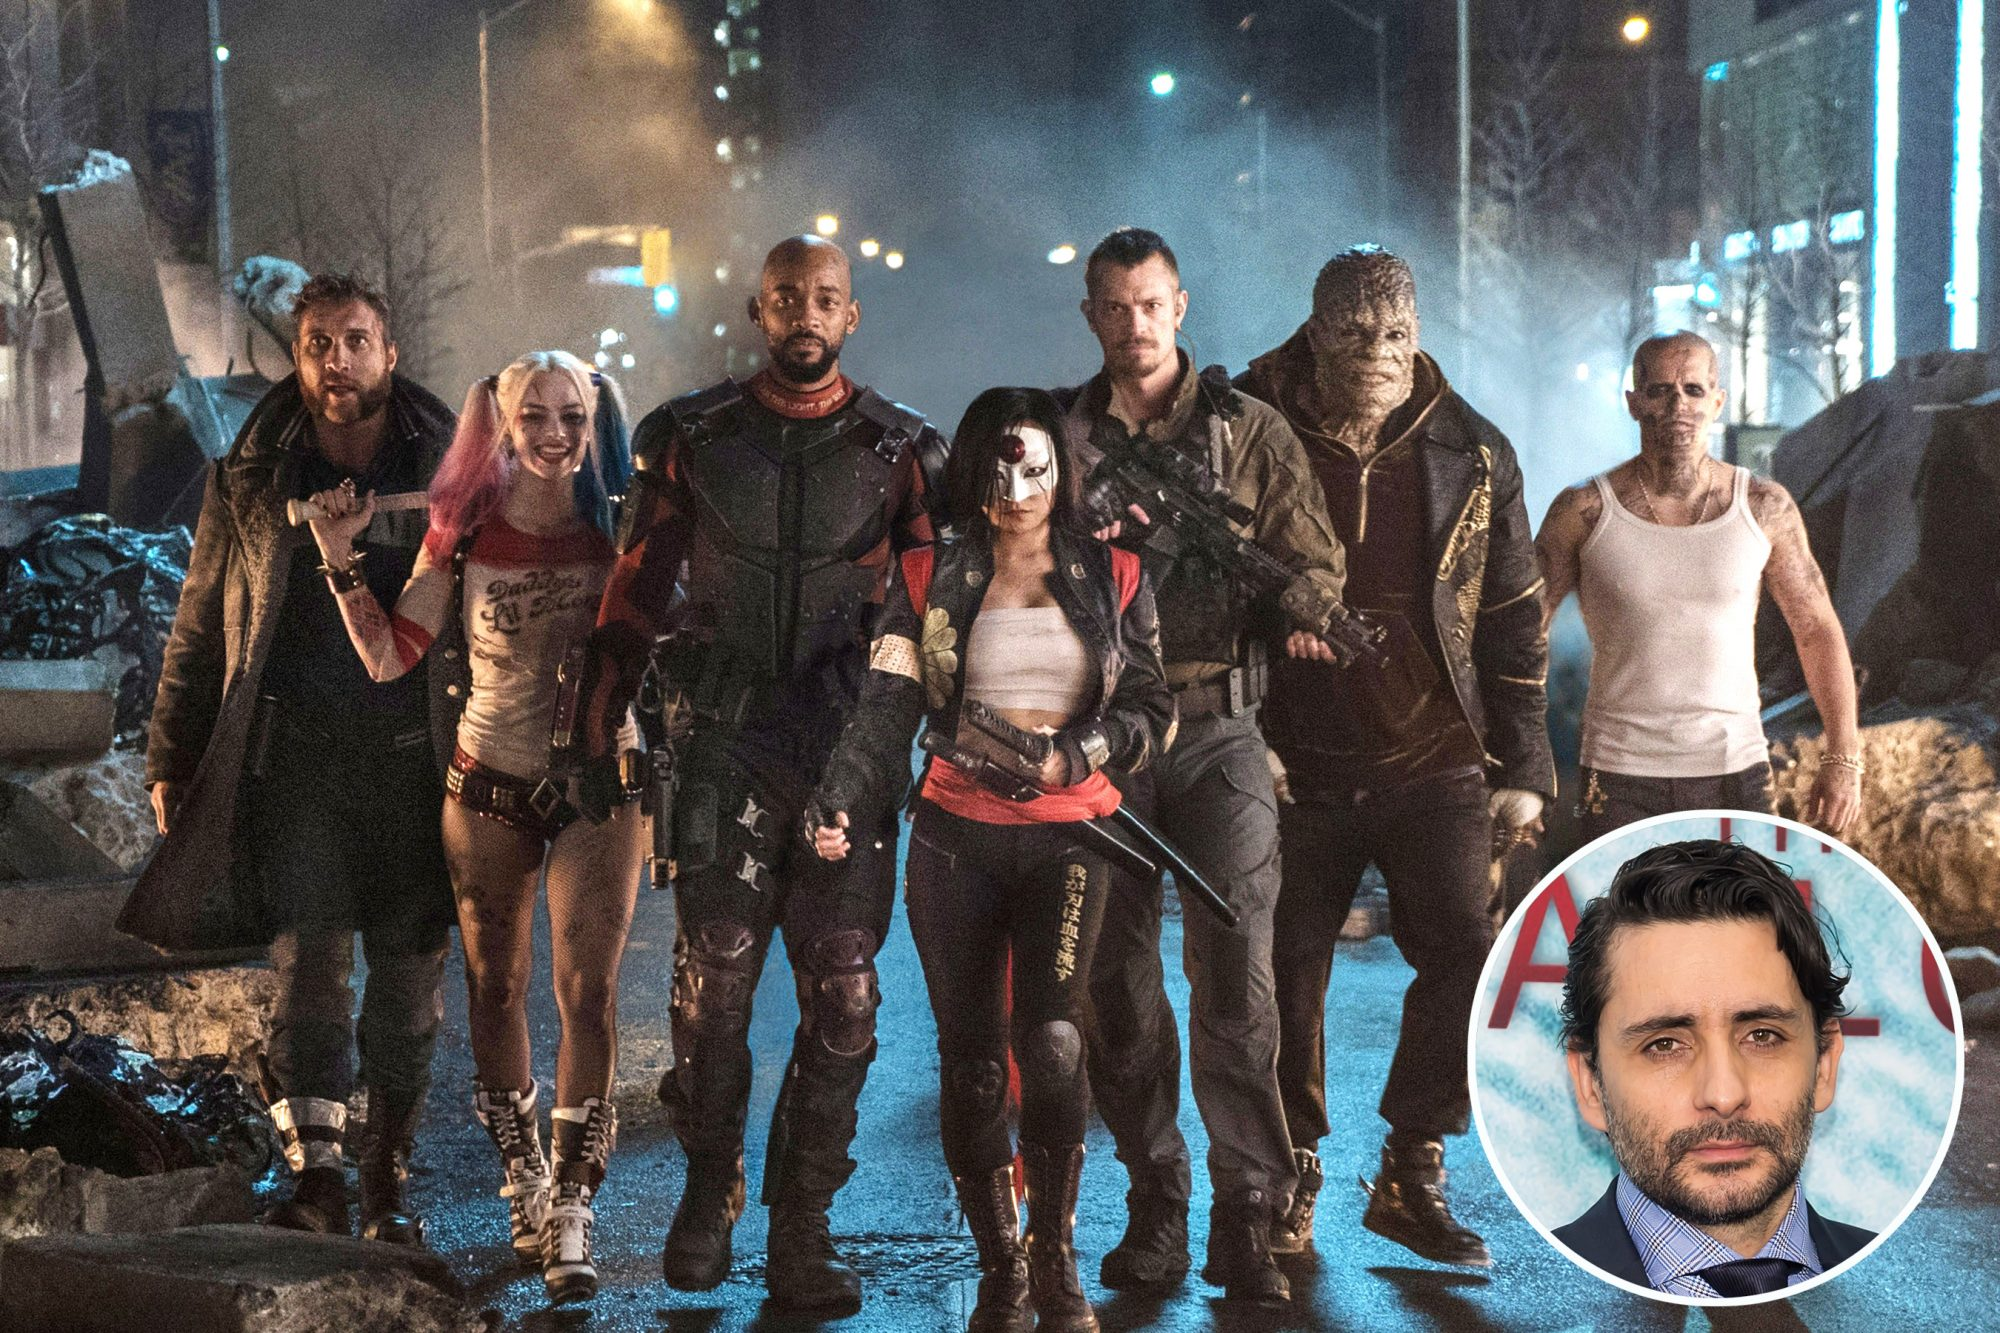 SUICIDE SQUAD, from left: Jai Courtney, Margot Robbie, Will Smith, Karen Fukuhara, Joel Kinnaman,